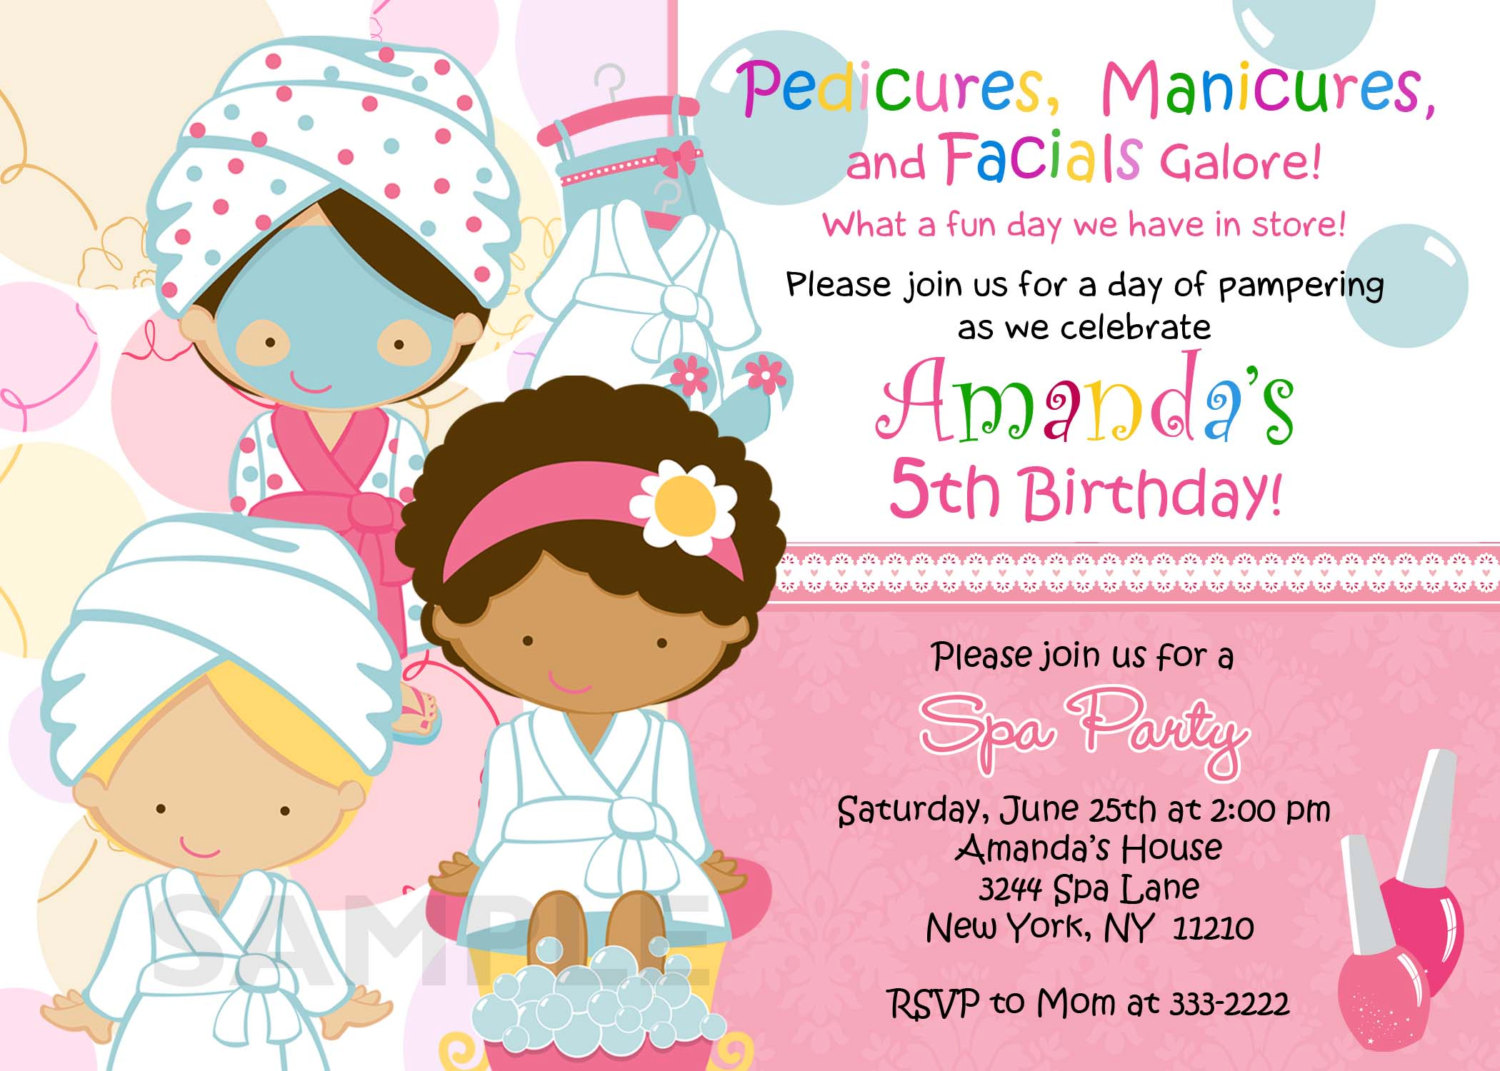 Birthday Invitation Personalized Spa Mani Pedi By Theprintfairy